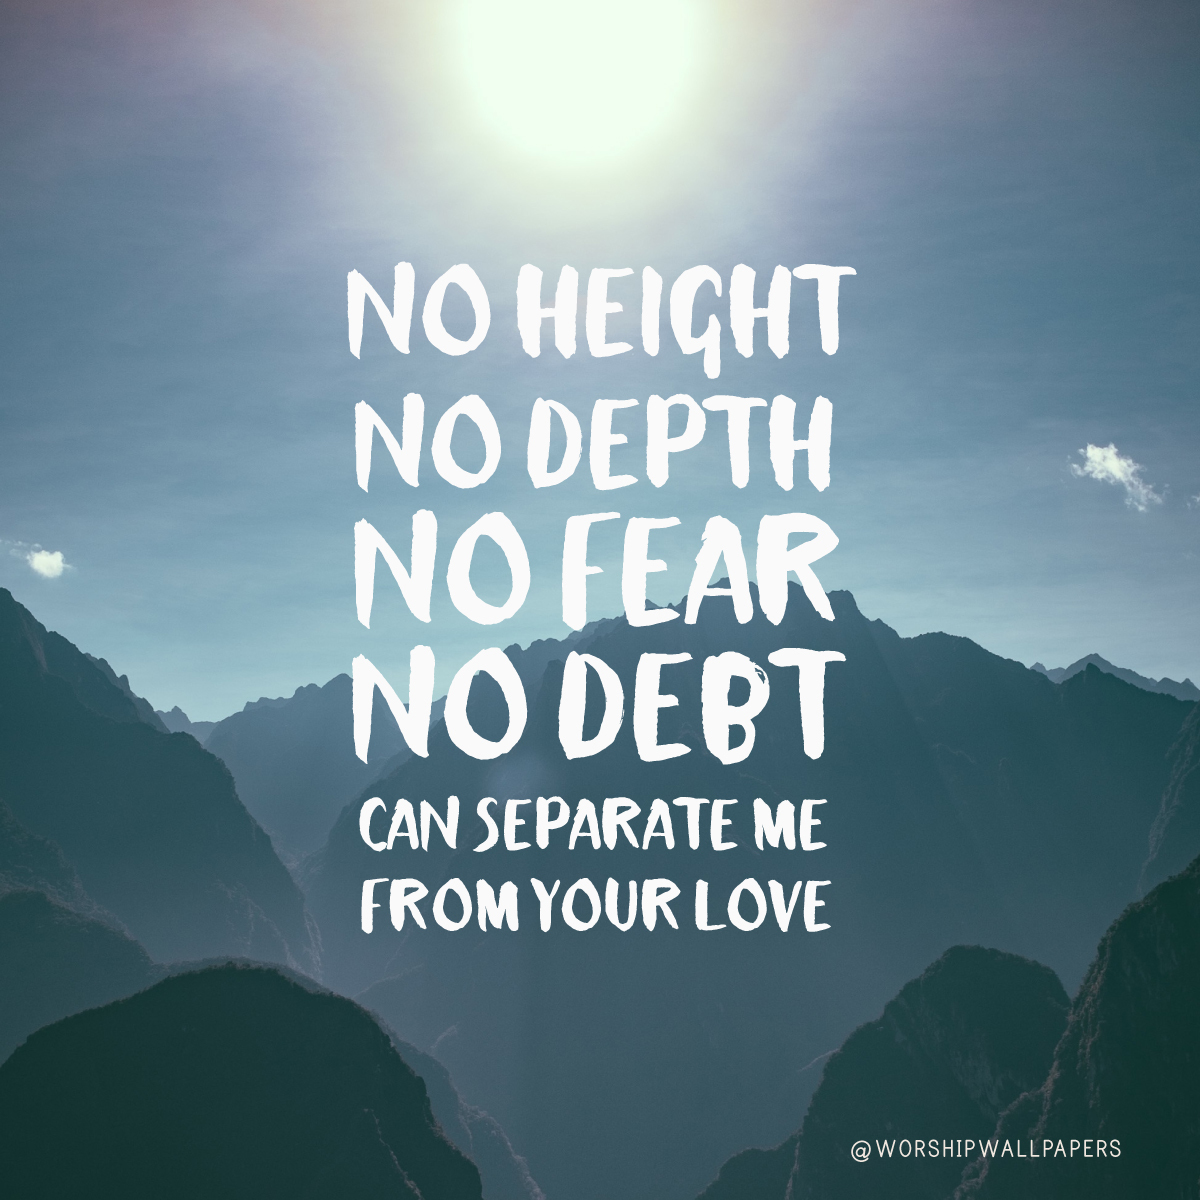 Unstoppable Love Jesus Culture WORSHIP WALLPAPERS 1200x1200